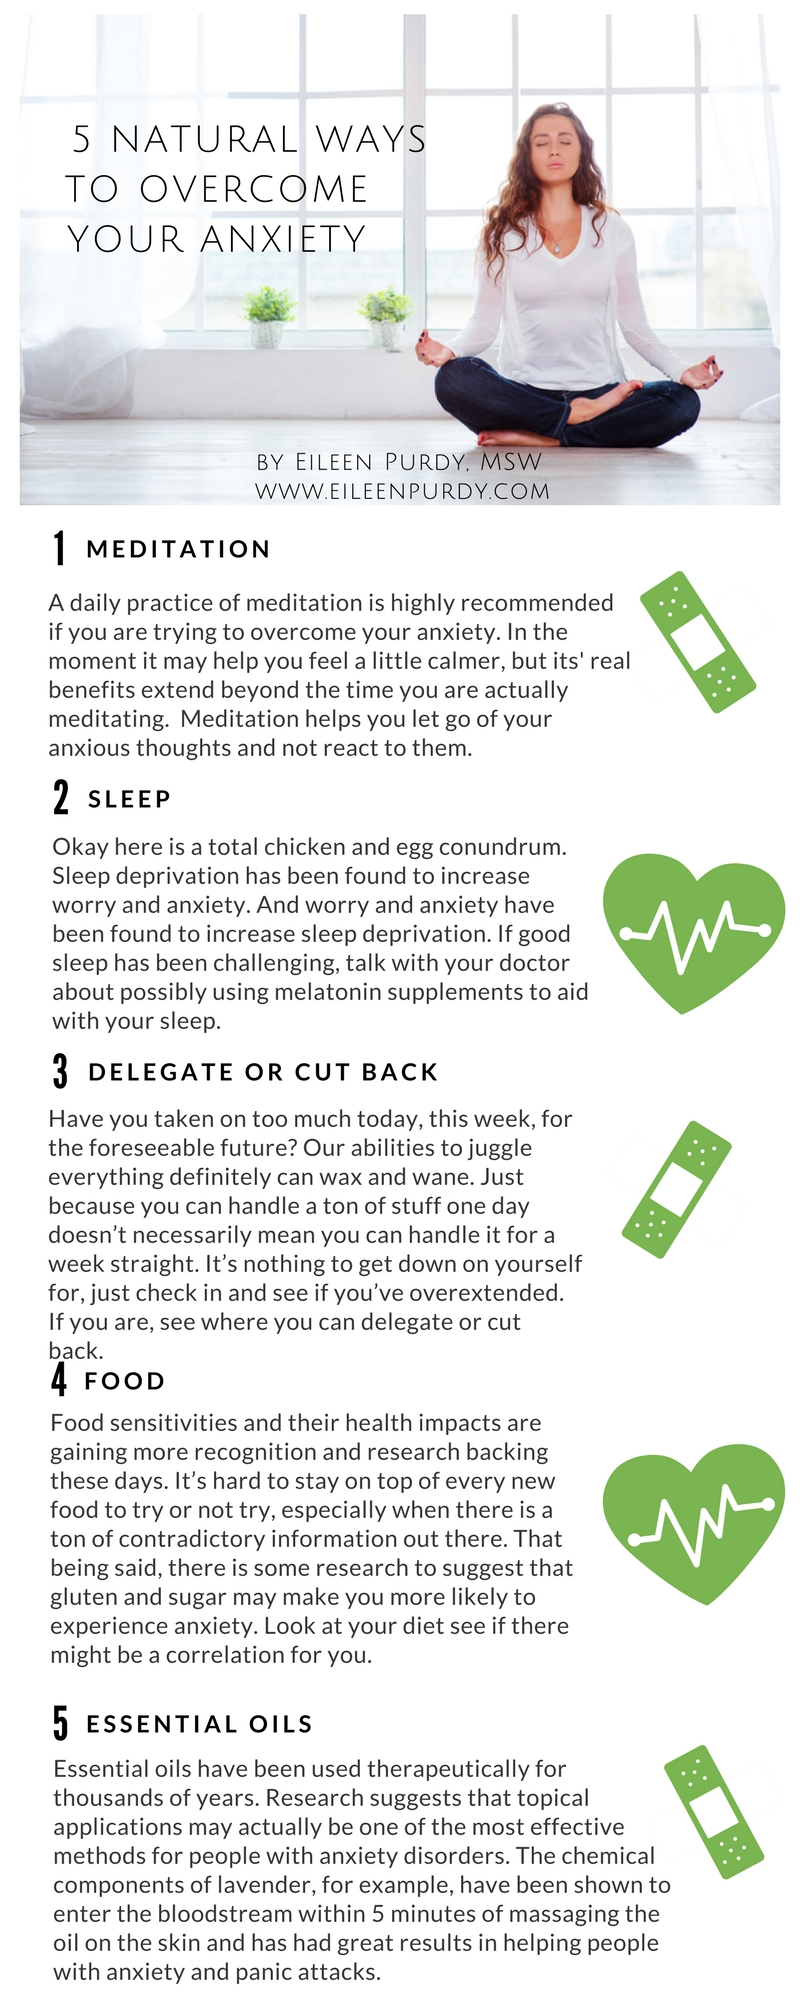 5 Natural Ways to Overcome Anxiety .jpg